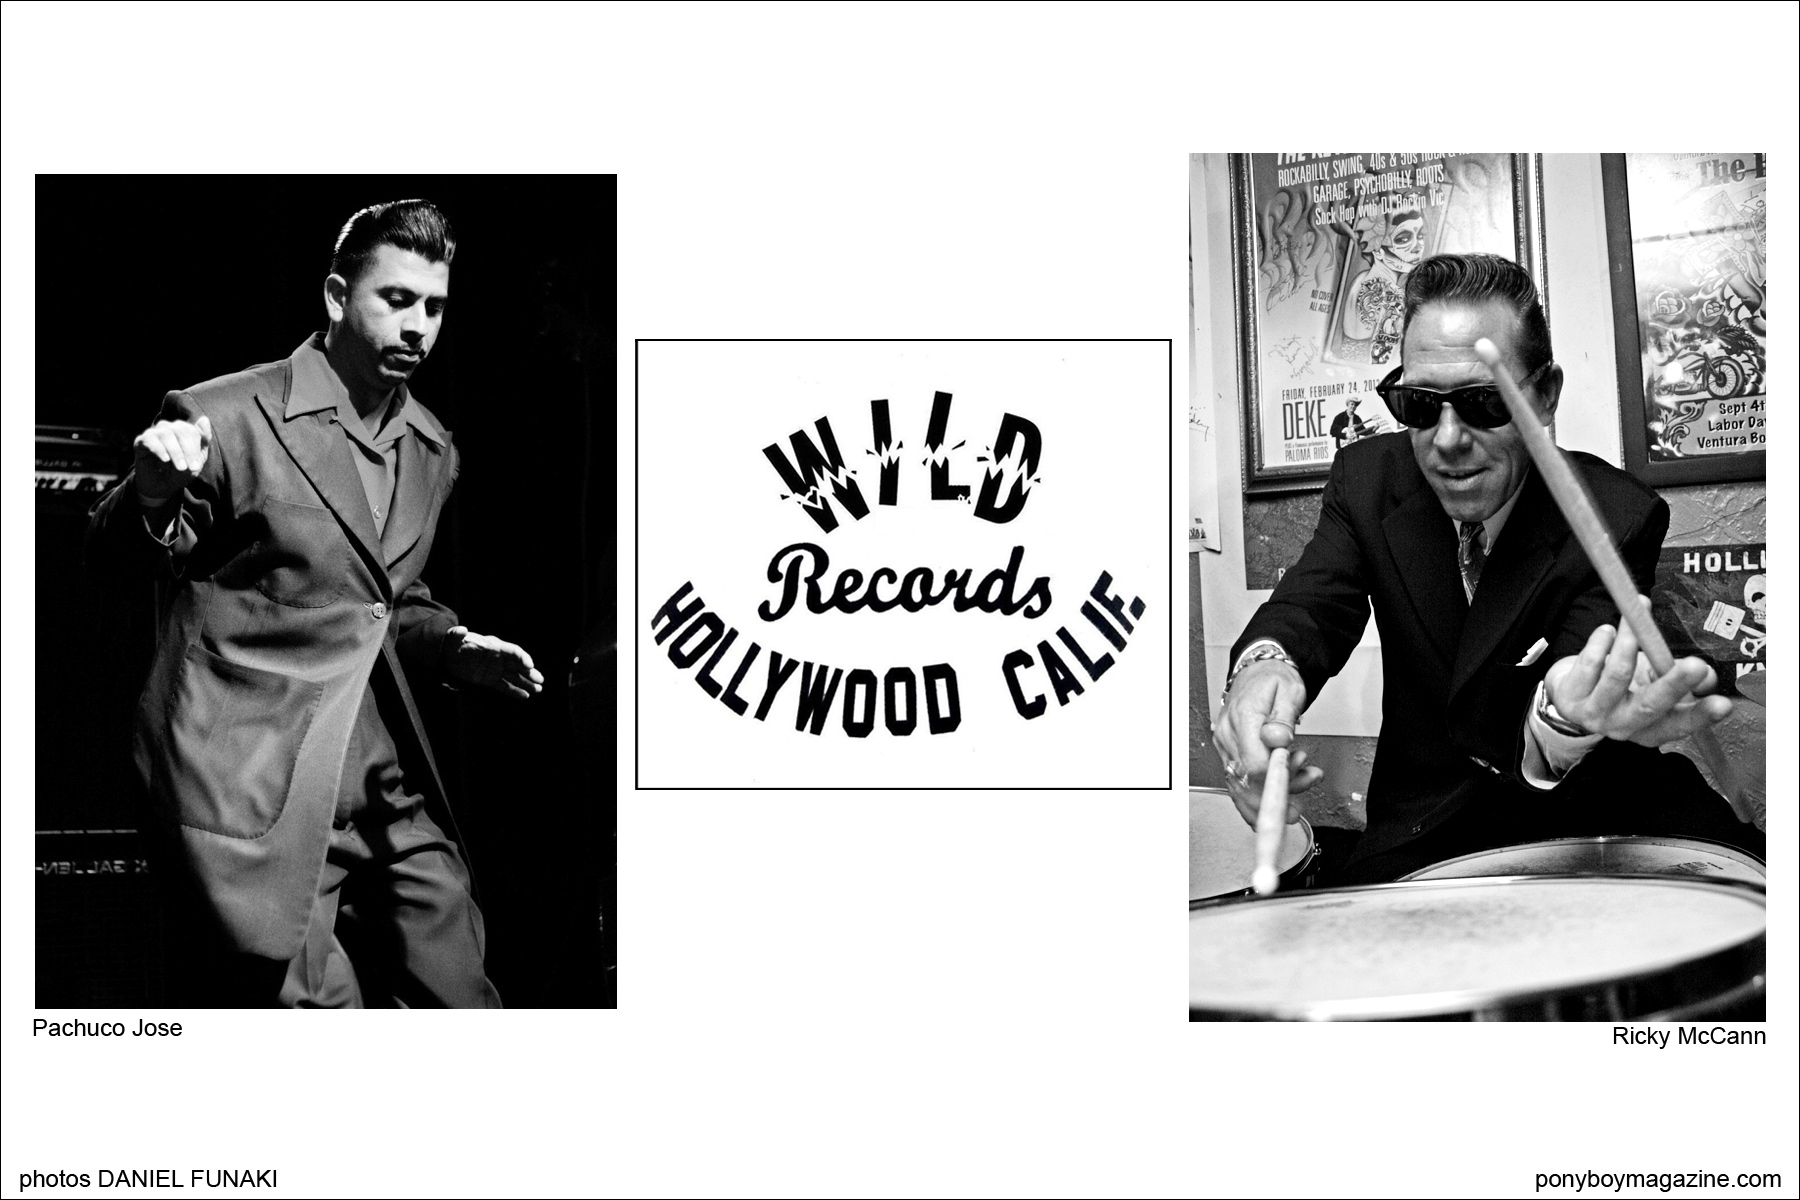 Musicians on the Wild Records label by Daniel Funaki. Ponyboy Magazine.